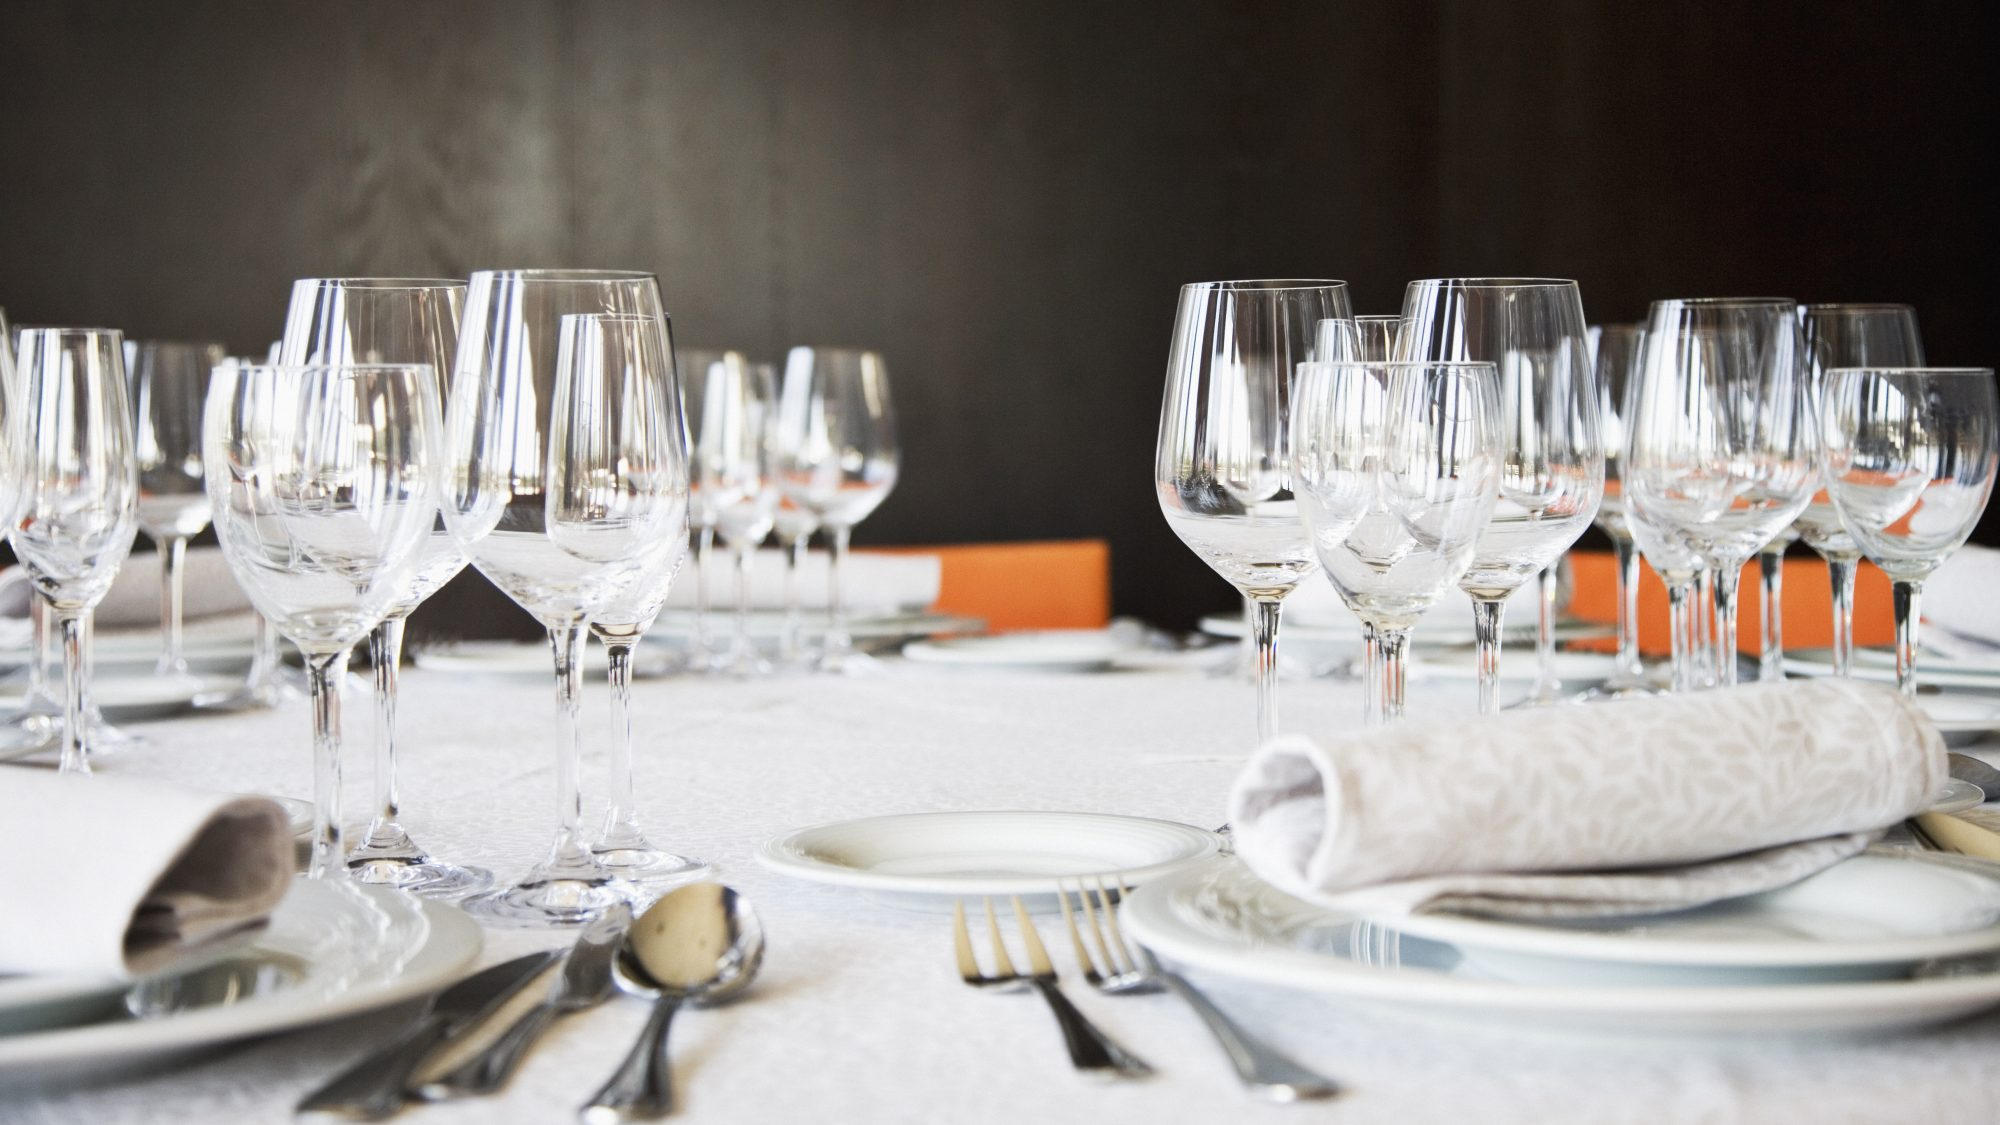 6 Fancy Restaurant Rules You Can Forget About